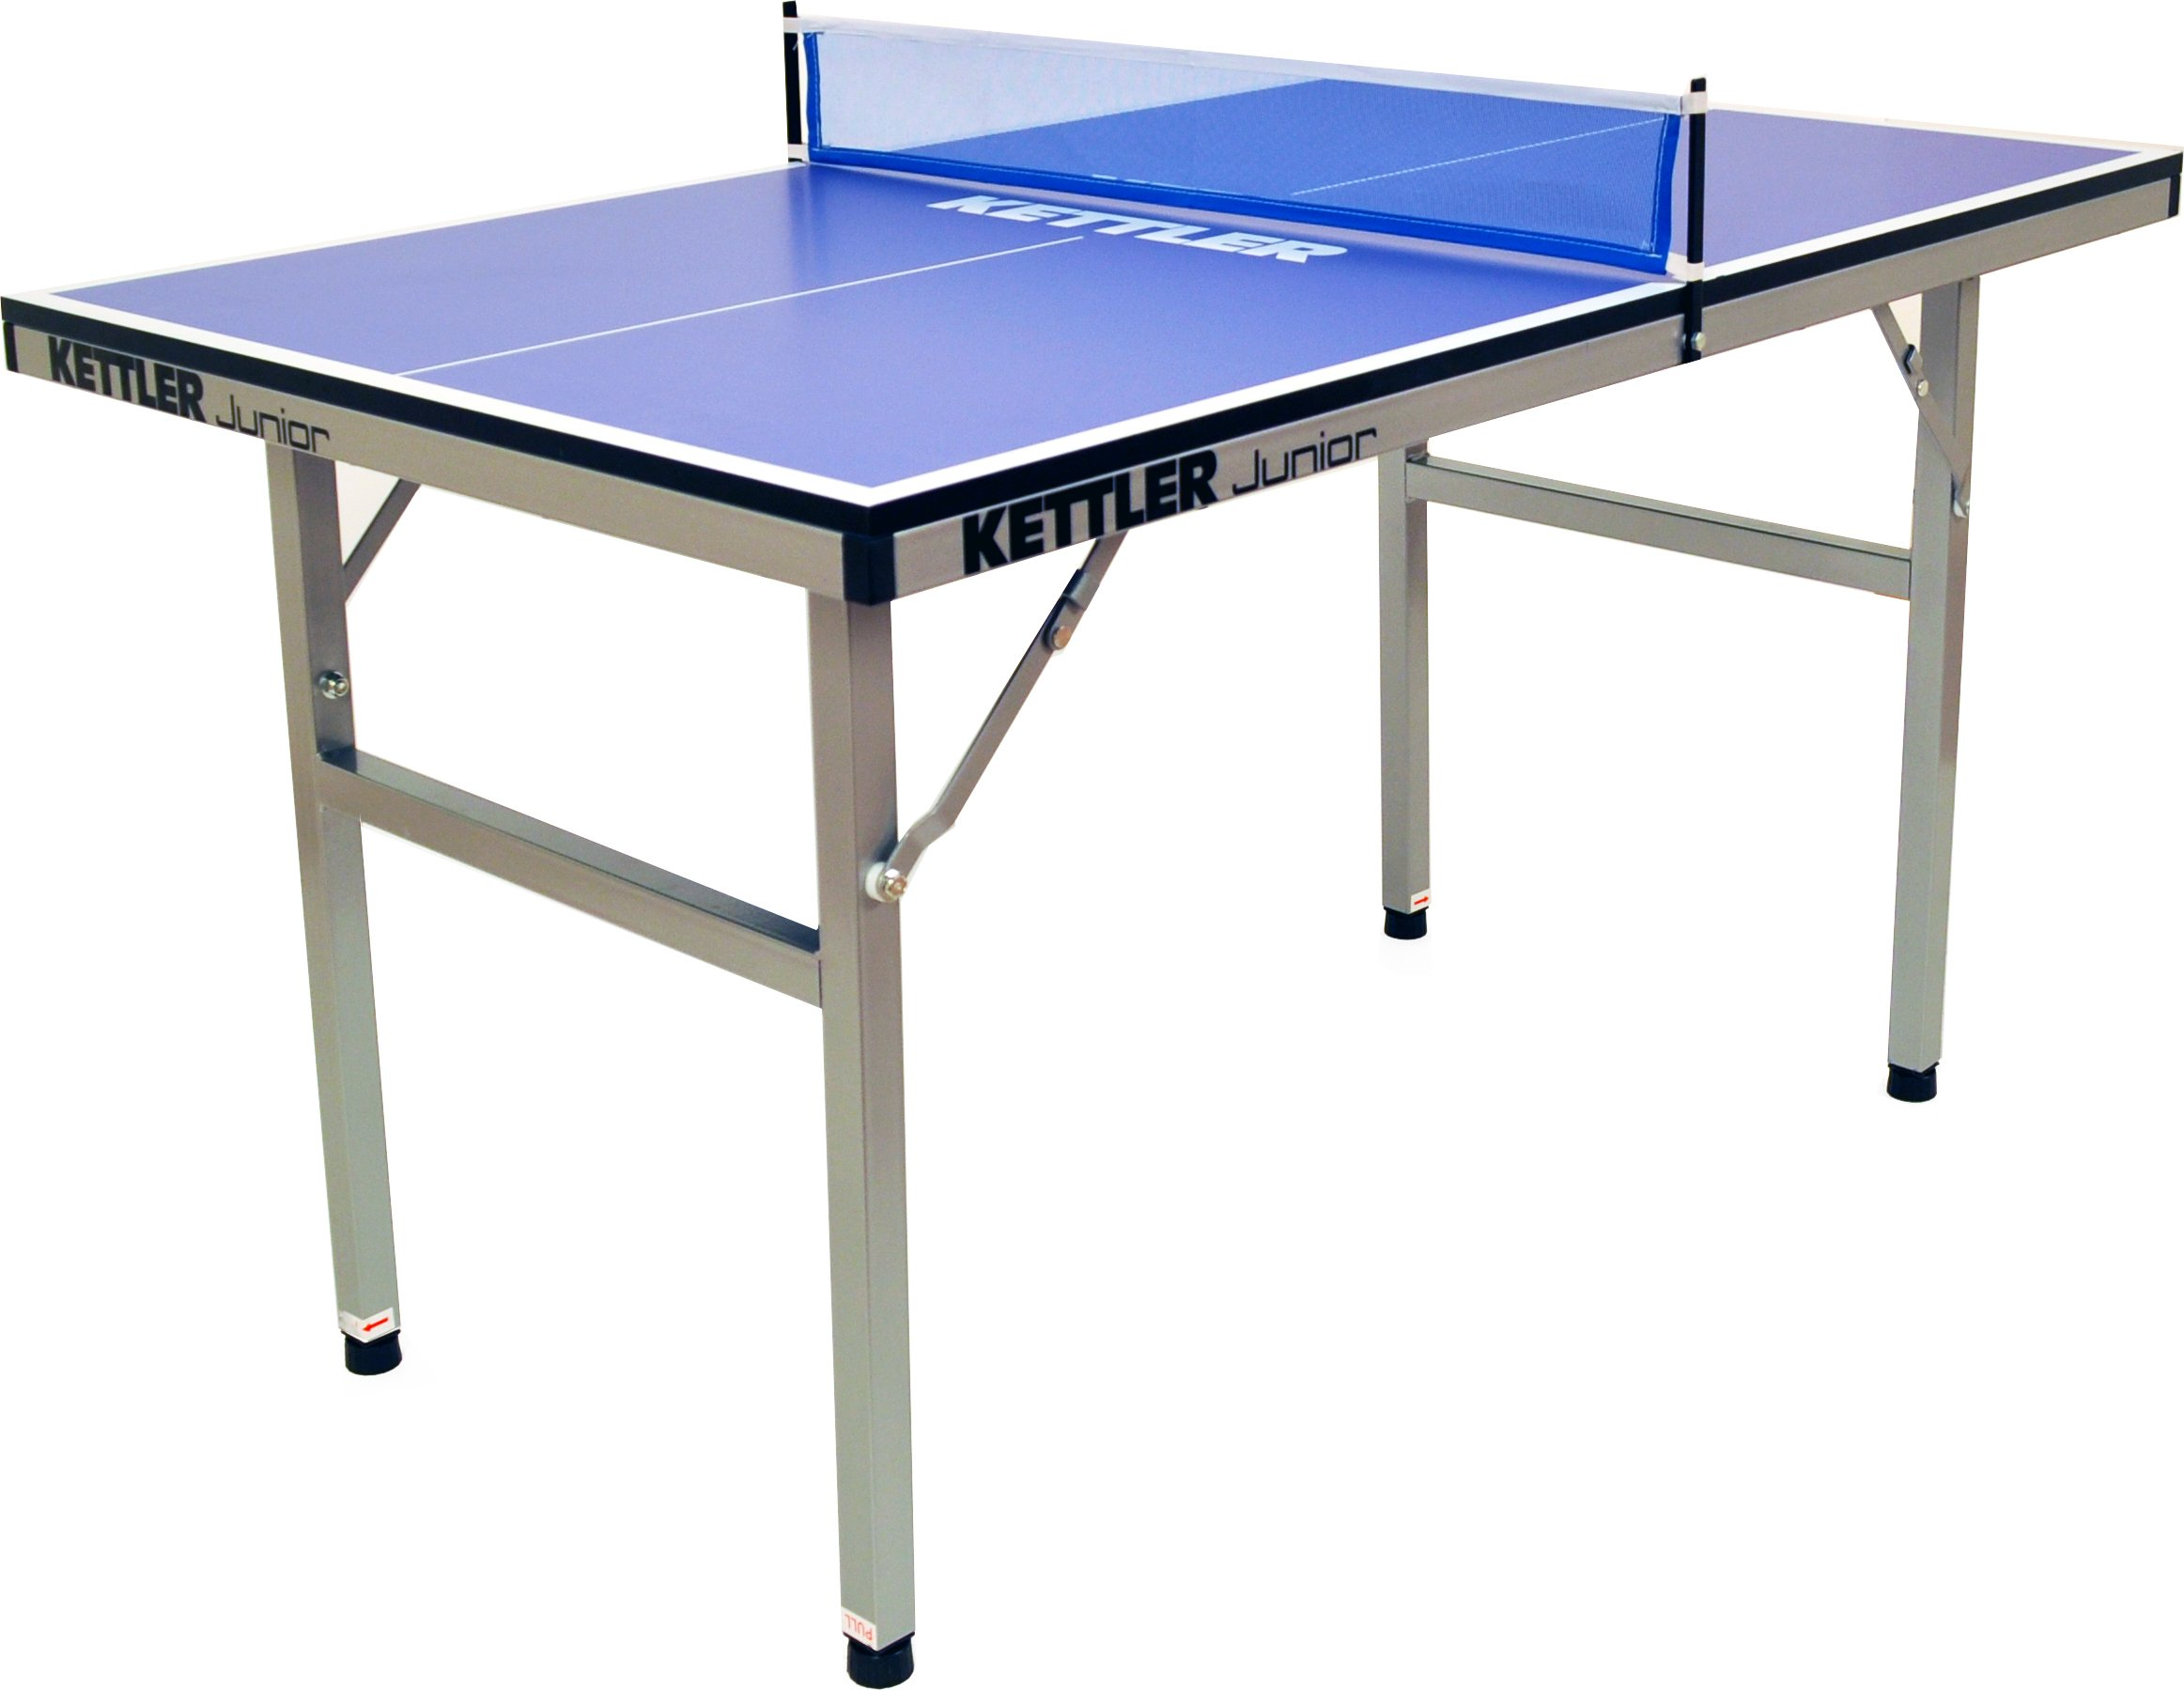 Kettler Junior Mid-Sized Collapsible Indoor Table Tennis Table, Blue Top